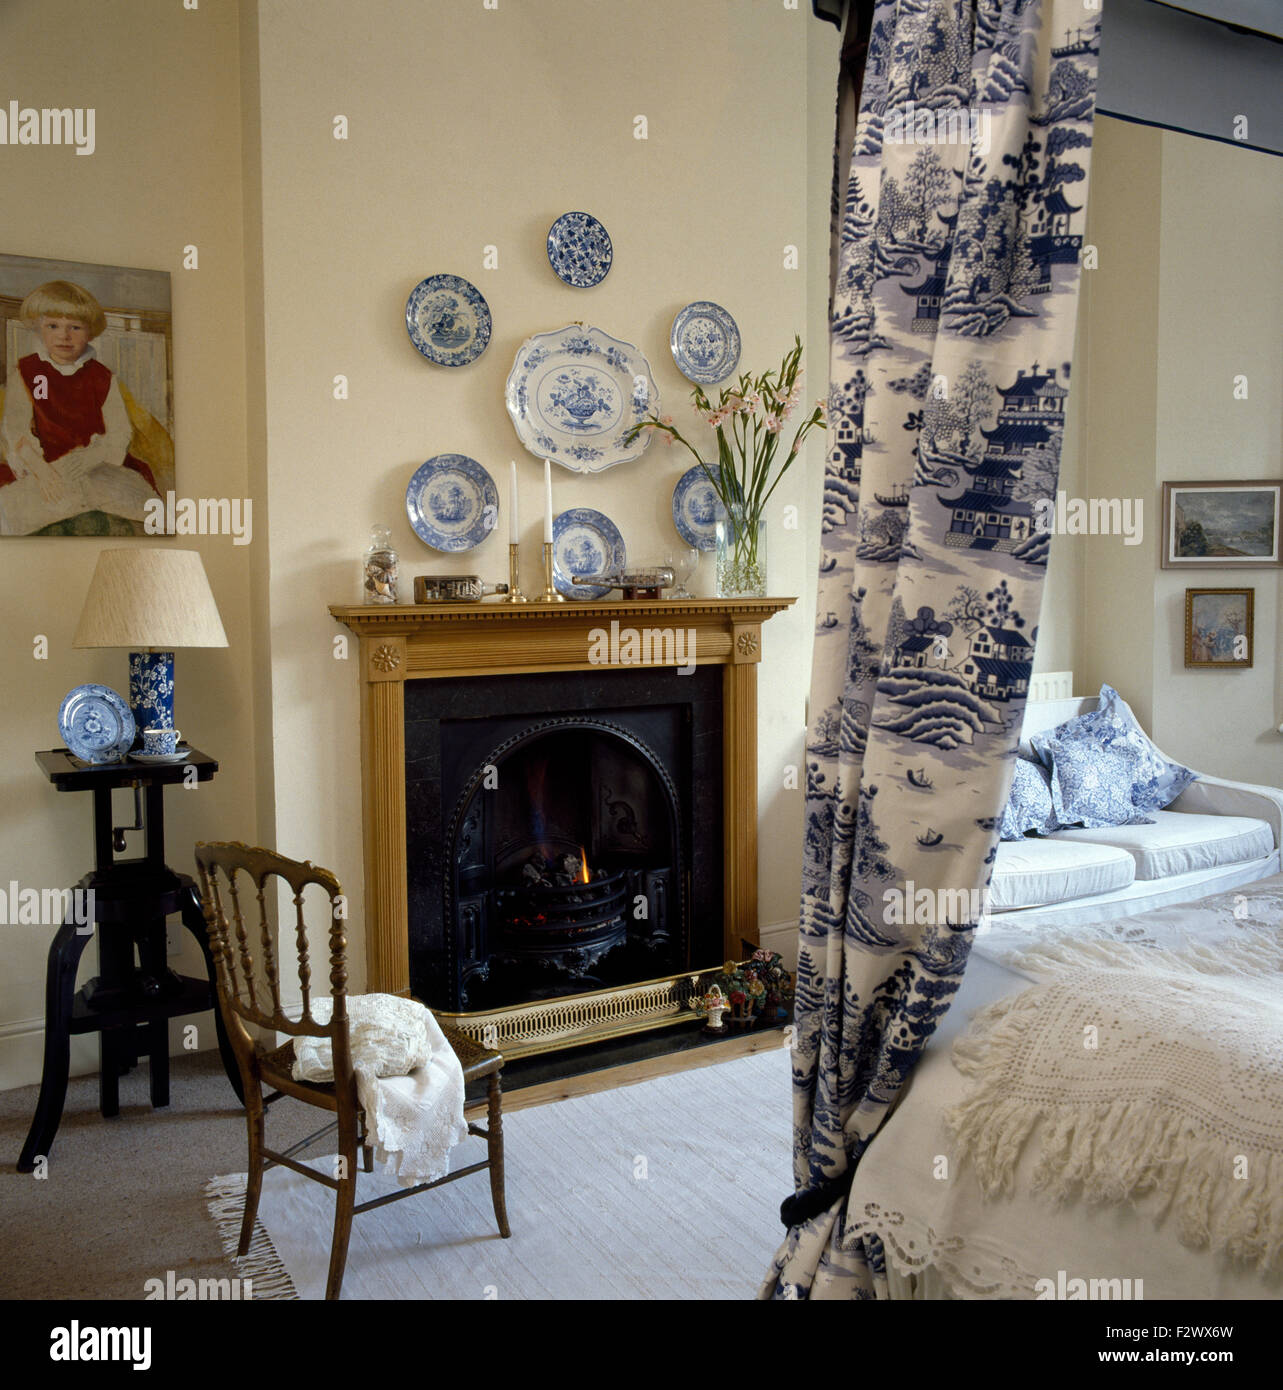 Collection of blue+white plates on wall above fireplace in bedroom ...